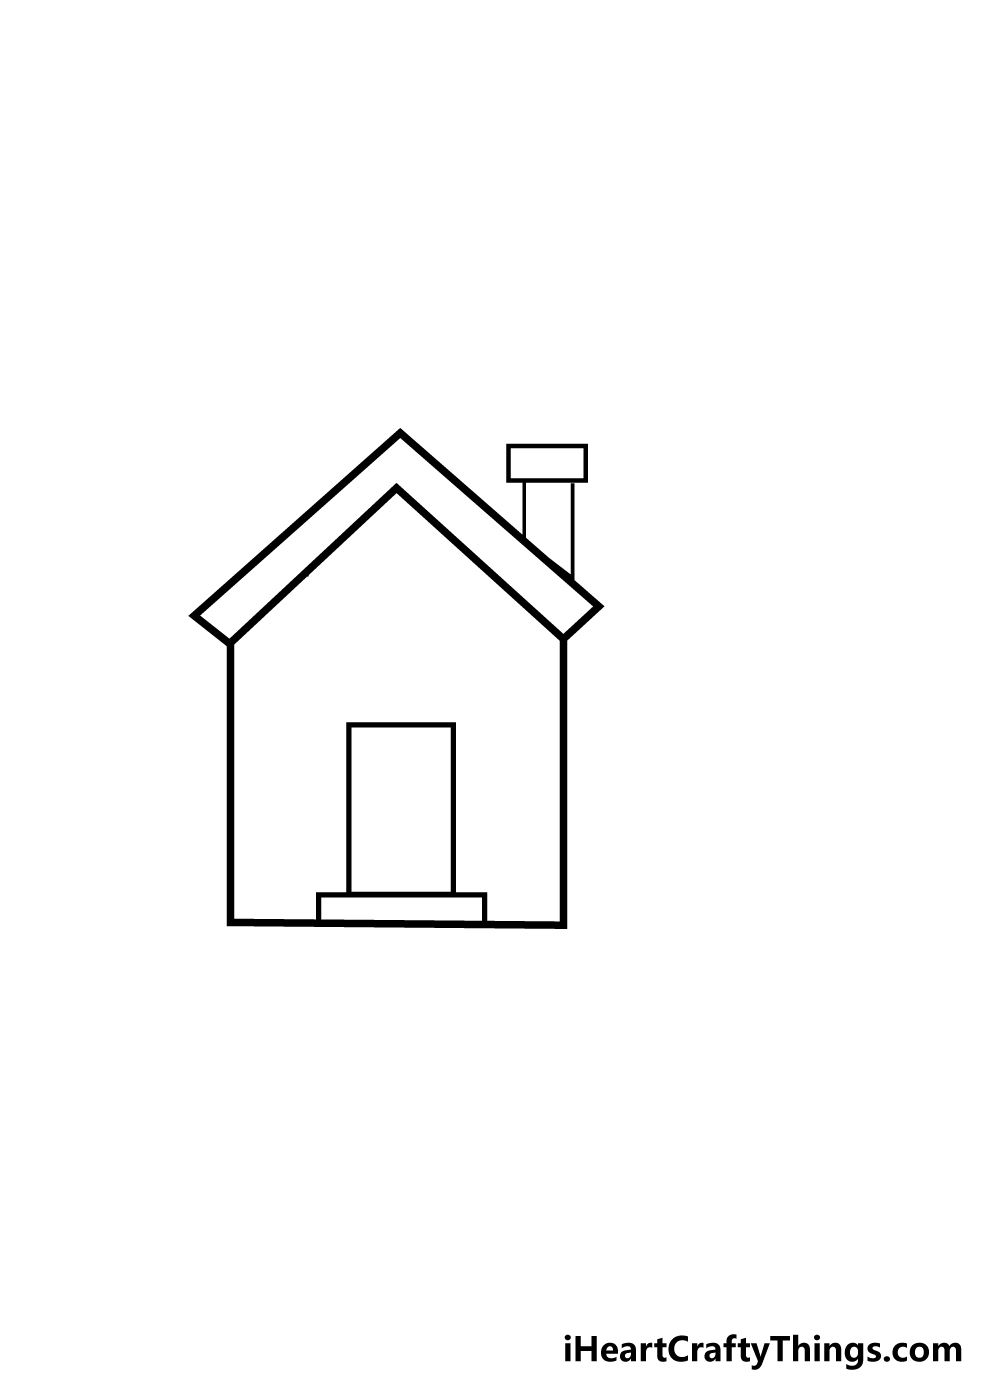 house drawing step 3